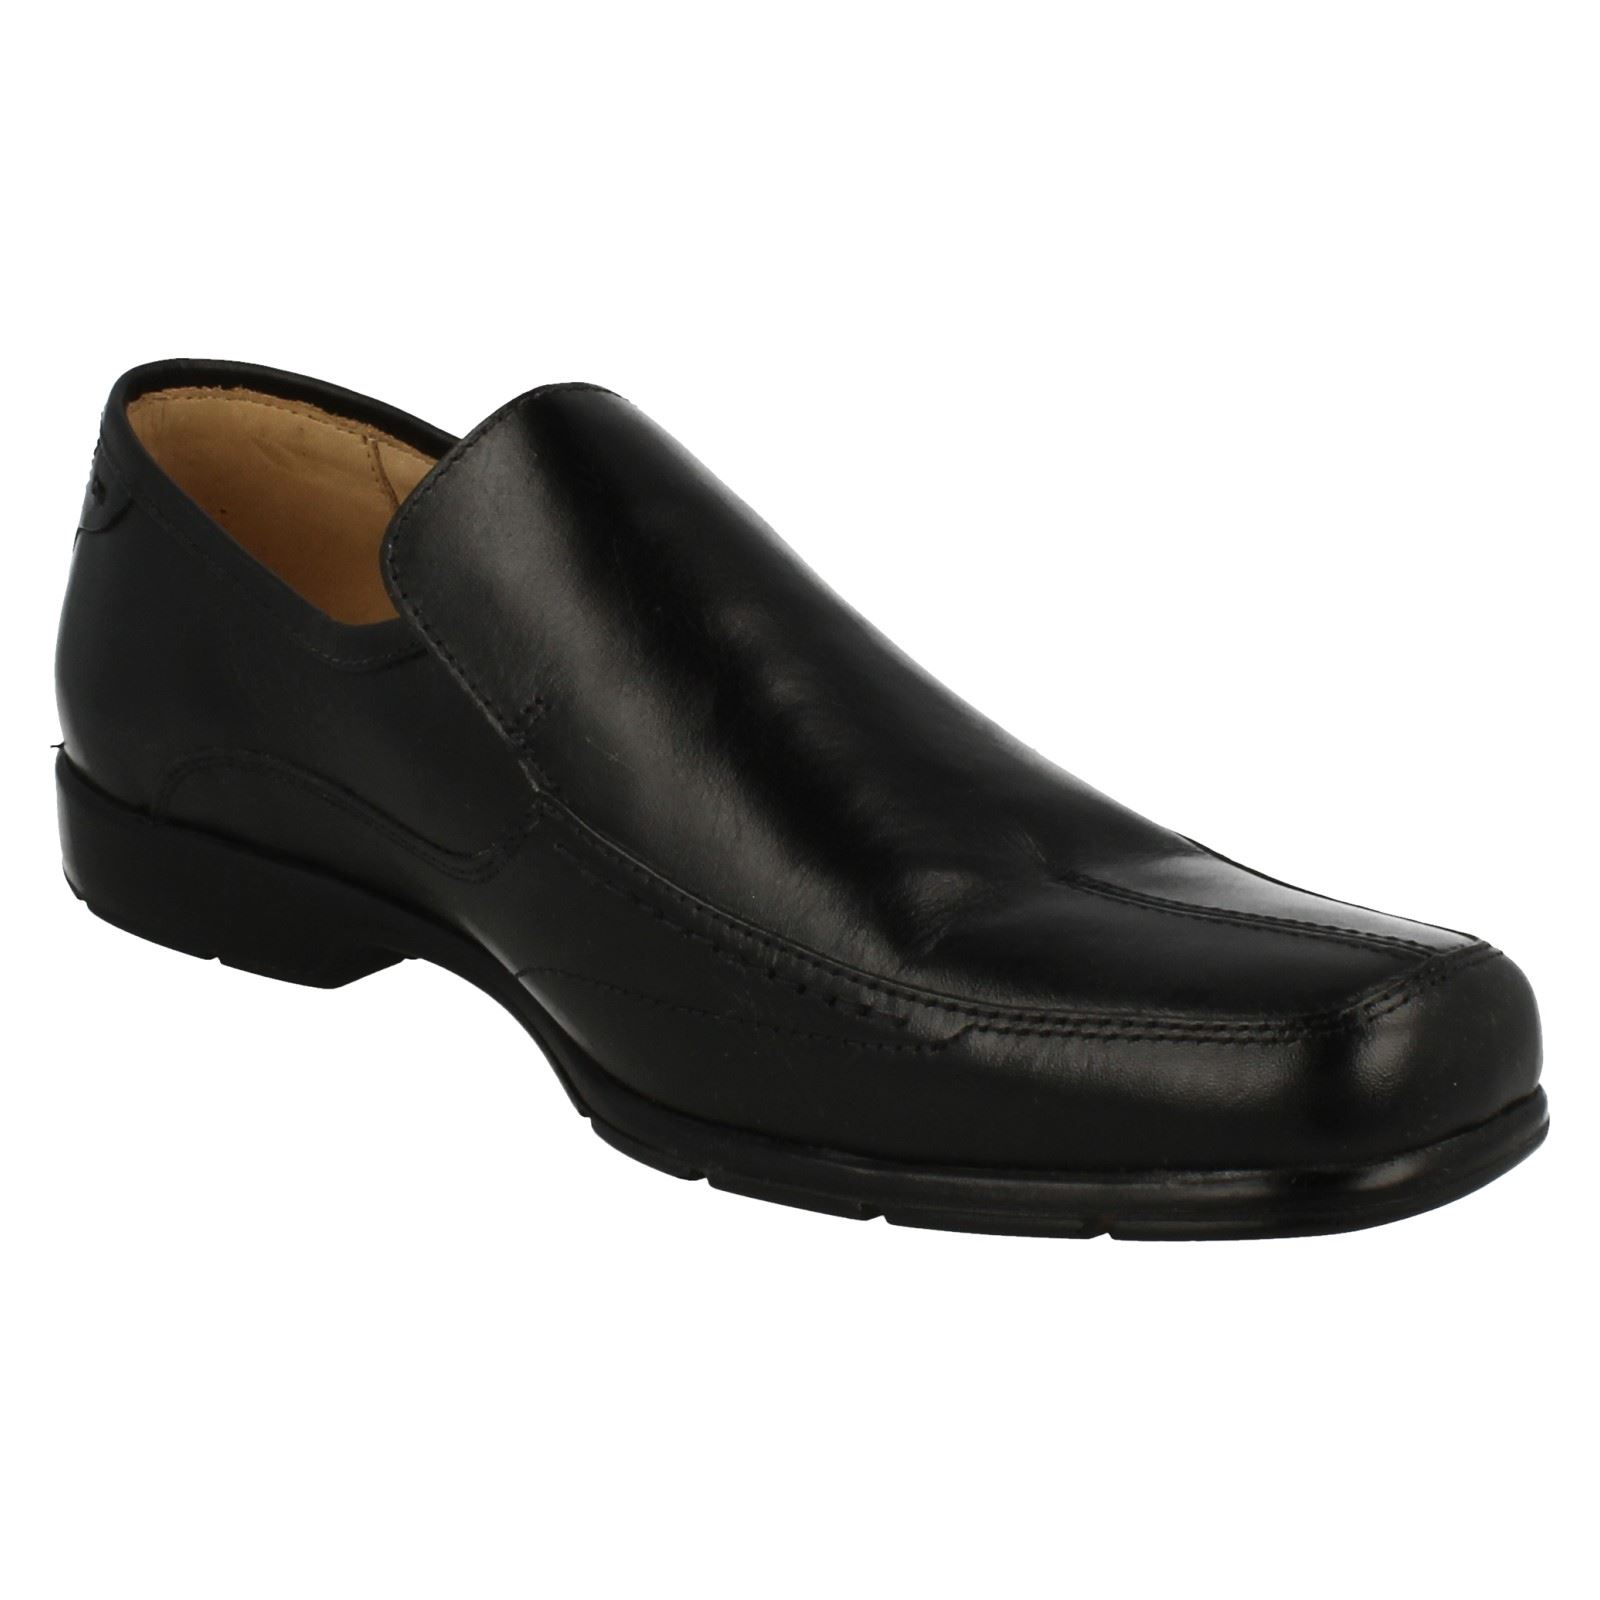 Uomo Anatomic Smart Loafer Petropolis Schuhes Petropolis Loafer 7eff90